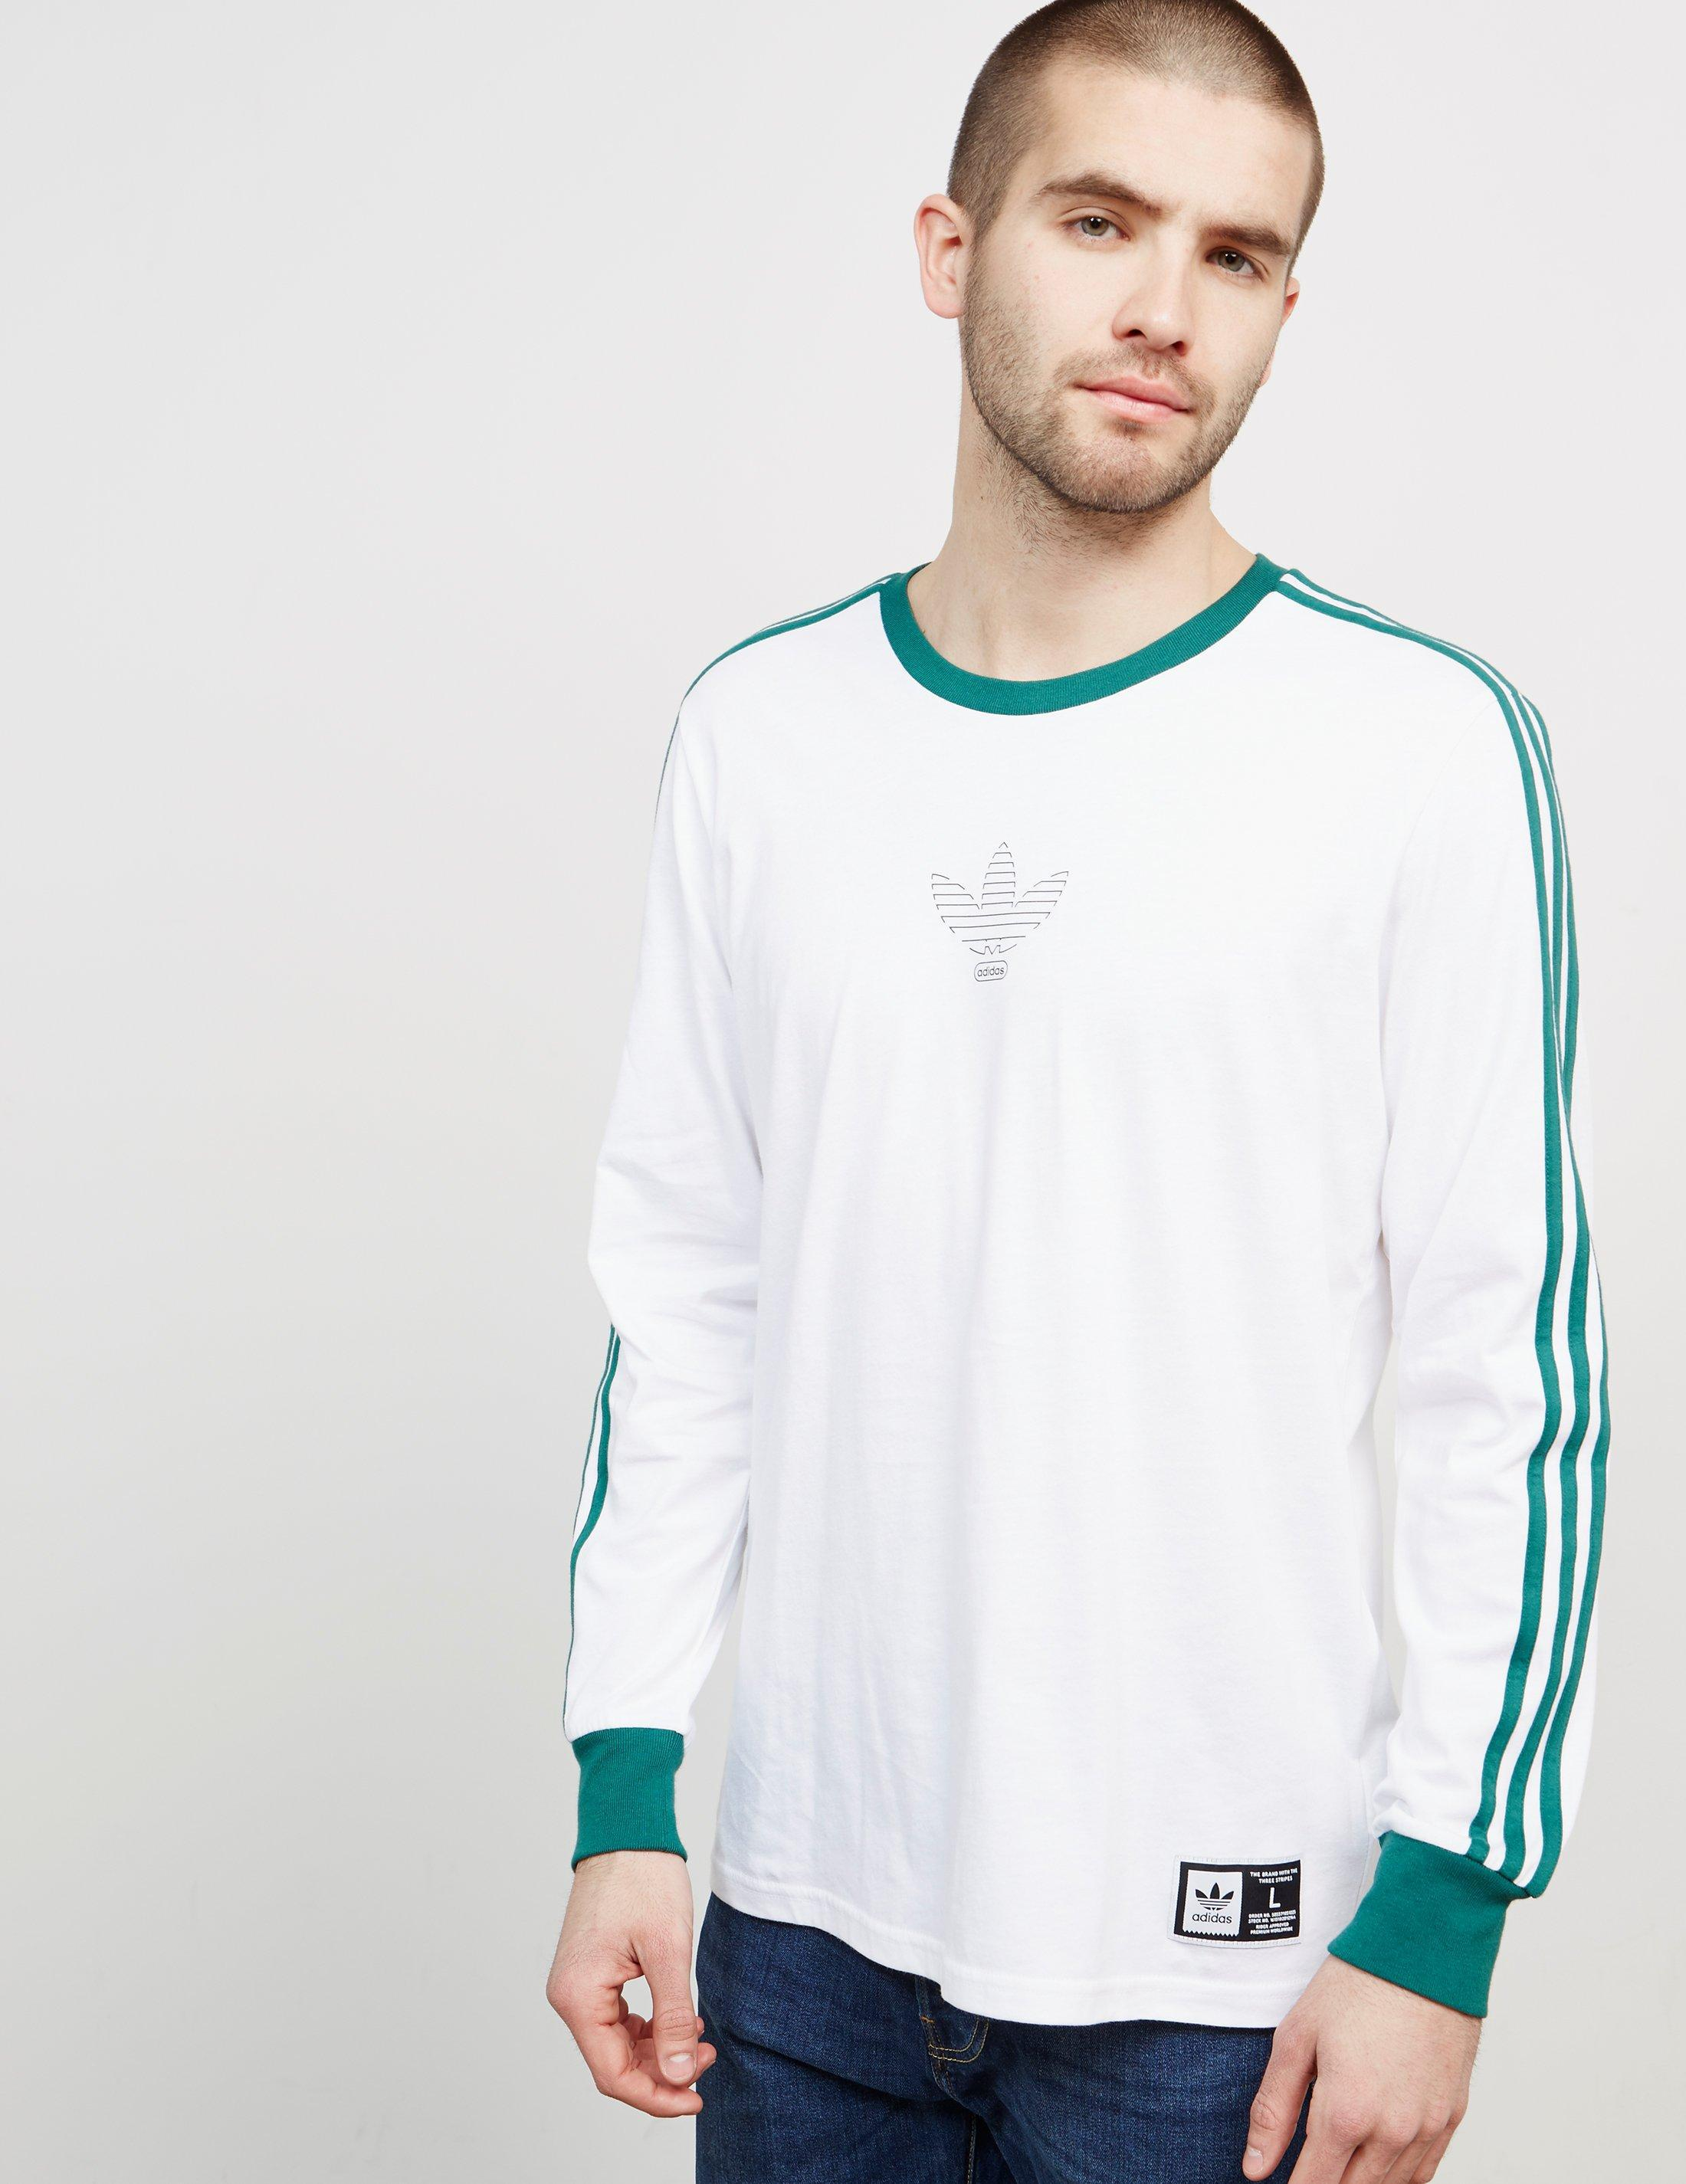 c59cd7660 adidas Originals Mens Club Long Sleeve T-shirt White/green in White ...